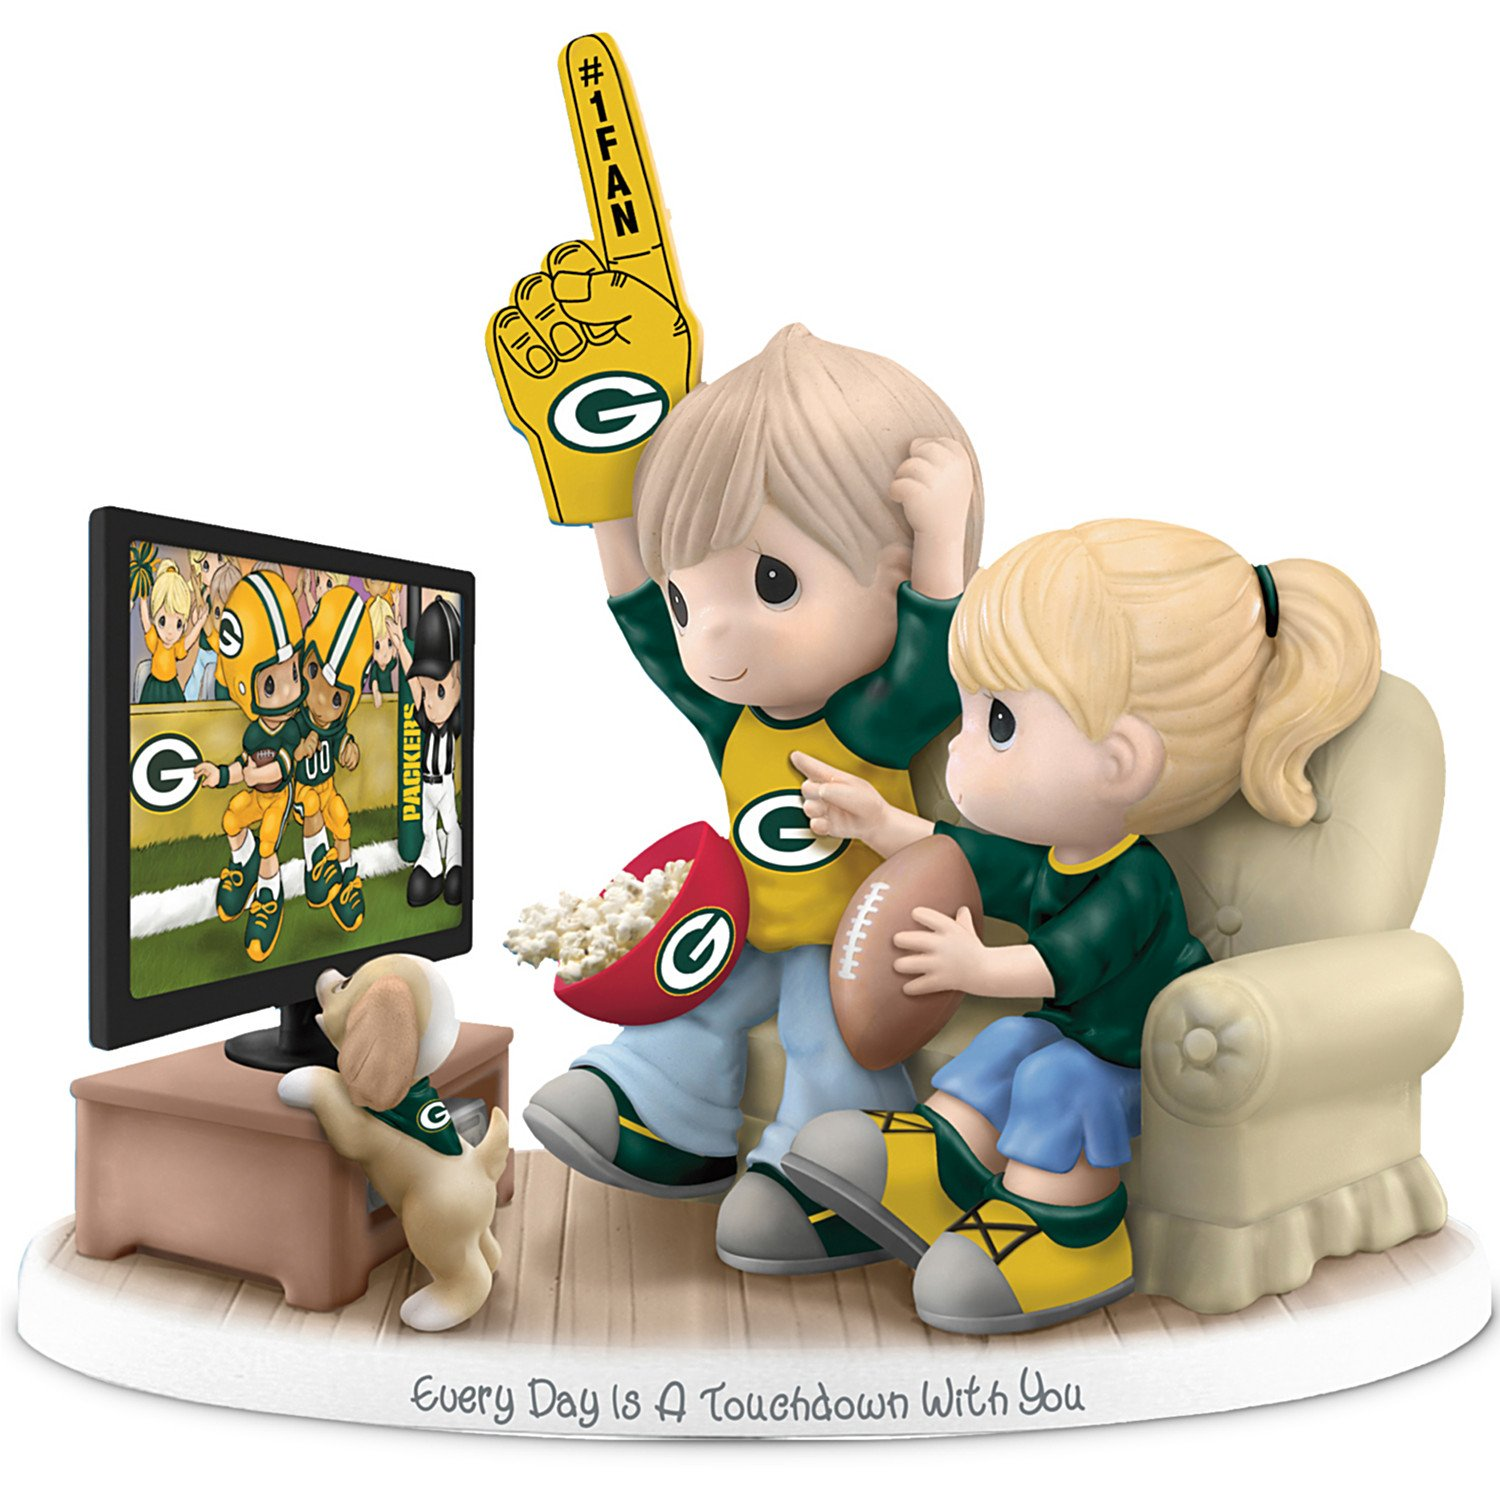 Figurine: Precious Moments Every Day Is A Touchdown With You Packers Figurine by The Hamilton Collection by The Hamilton Collection